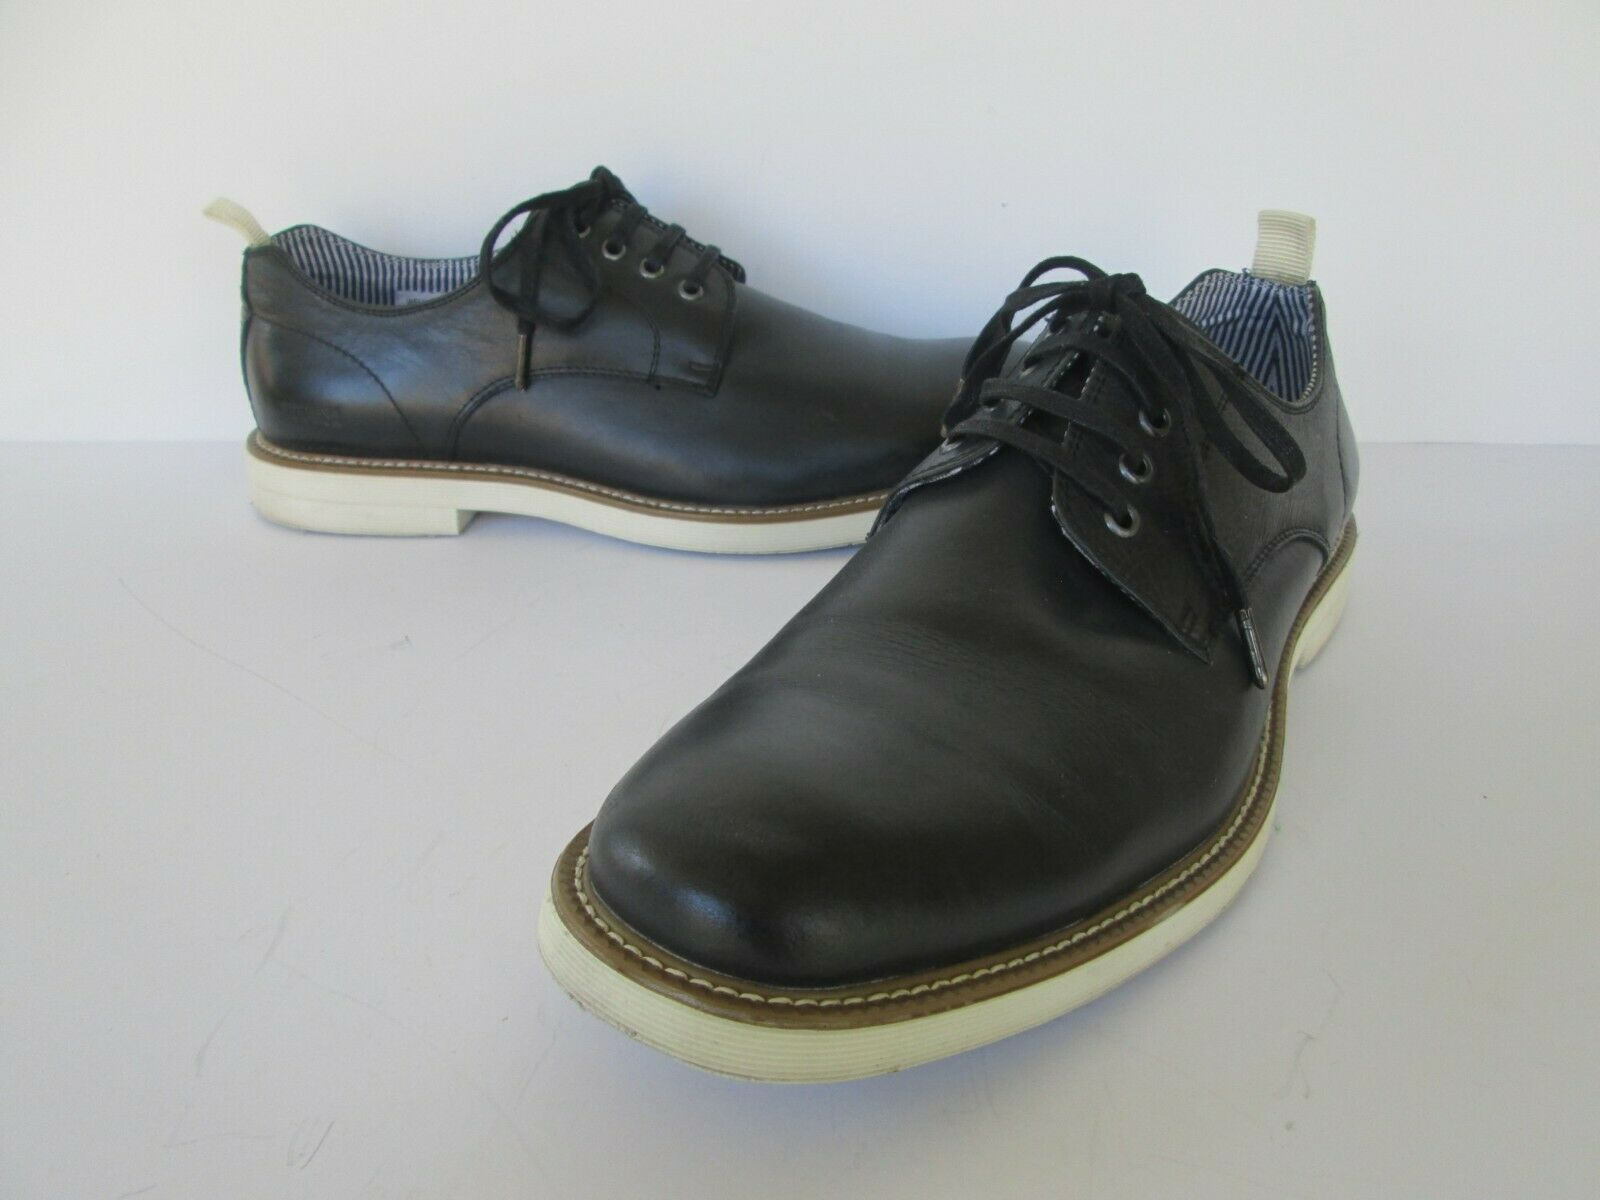 Kenneth Cole Reaction Mens Well Red Black Leather Oxfords Shoes 10 M